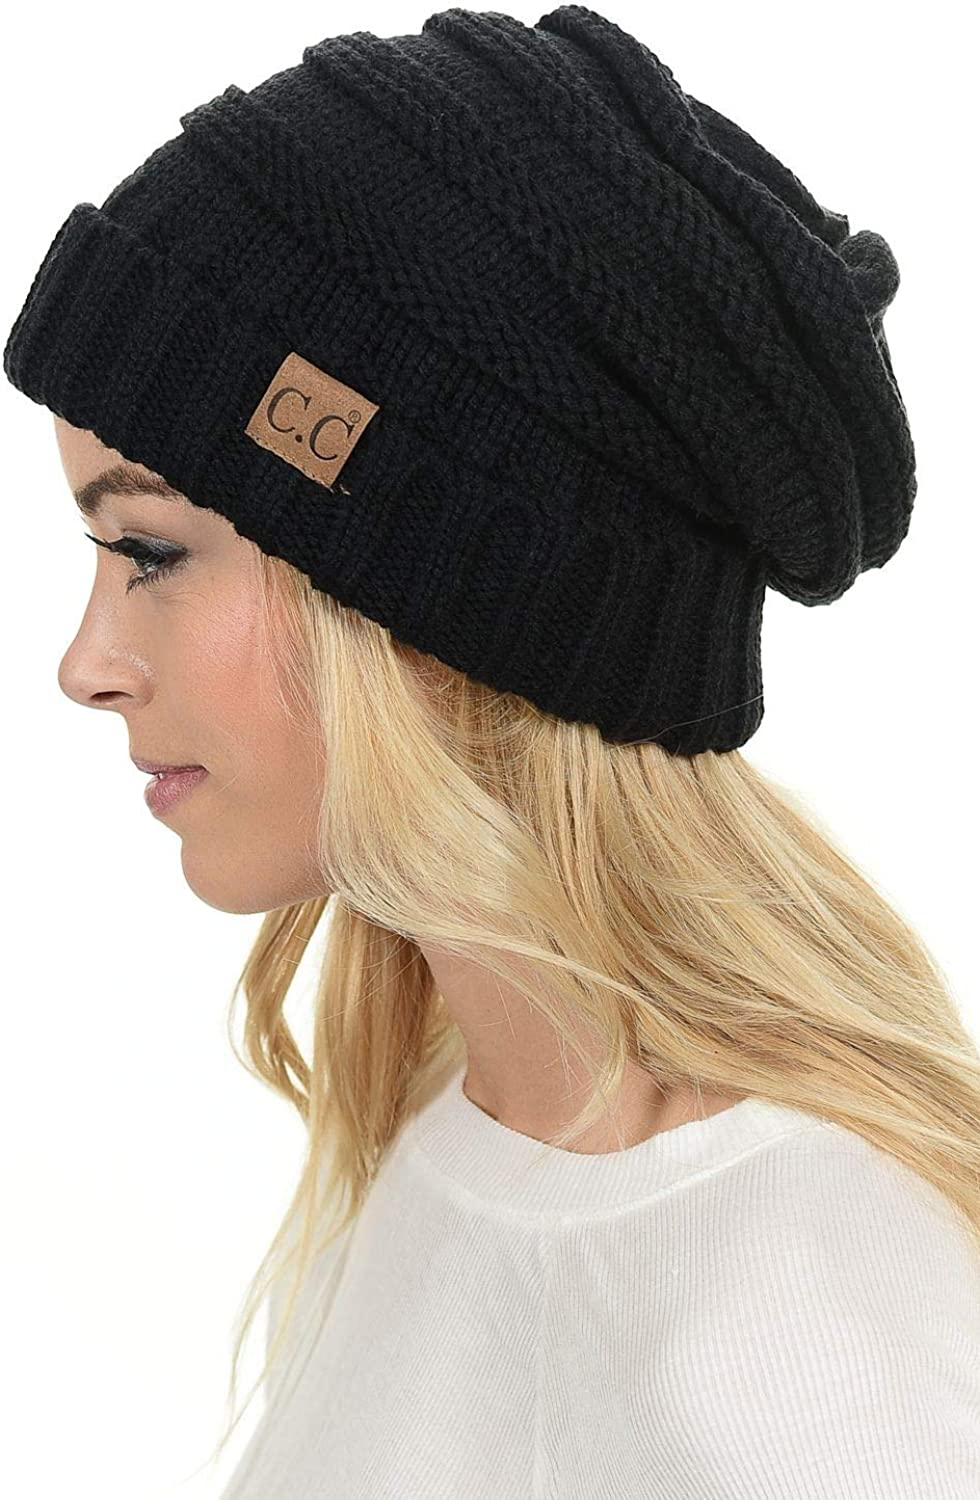 C.C Hat-100 Oversized Baggy Slouch Thick Warm Cap Hat Skully Cable Knit Beanie